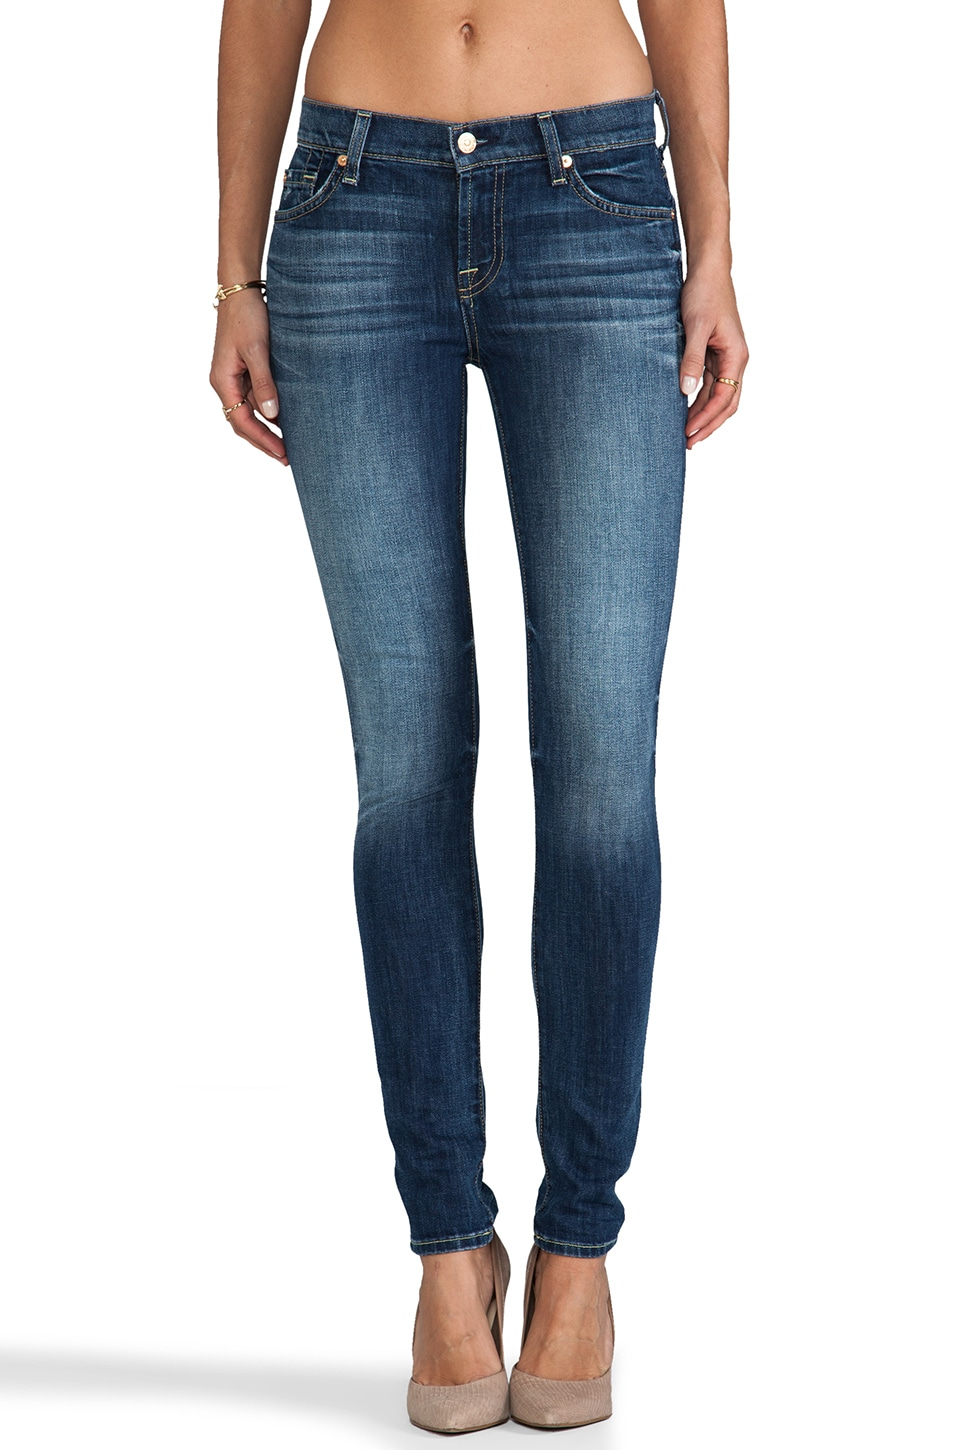 7 For All Mankind The Skinny in Authentic Bright Blue